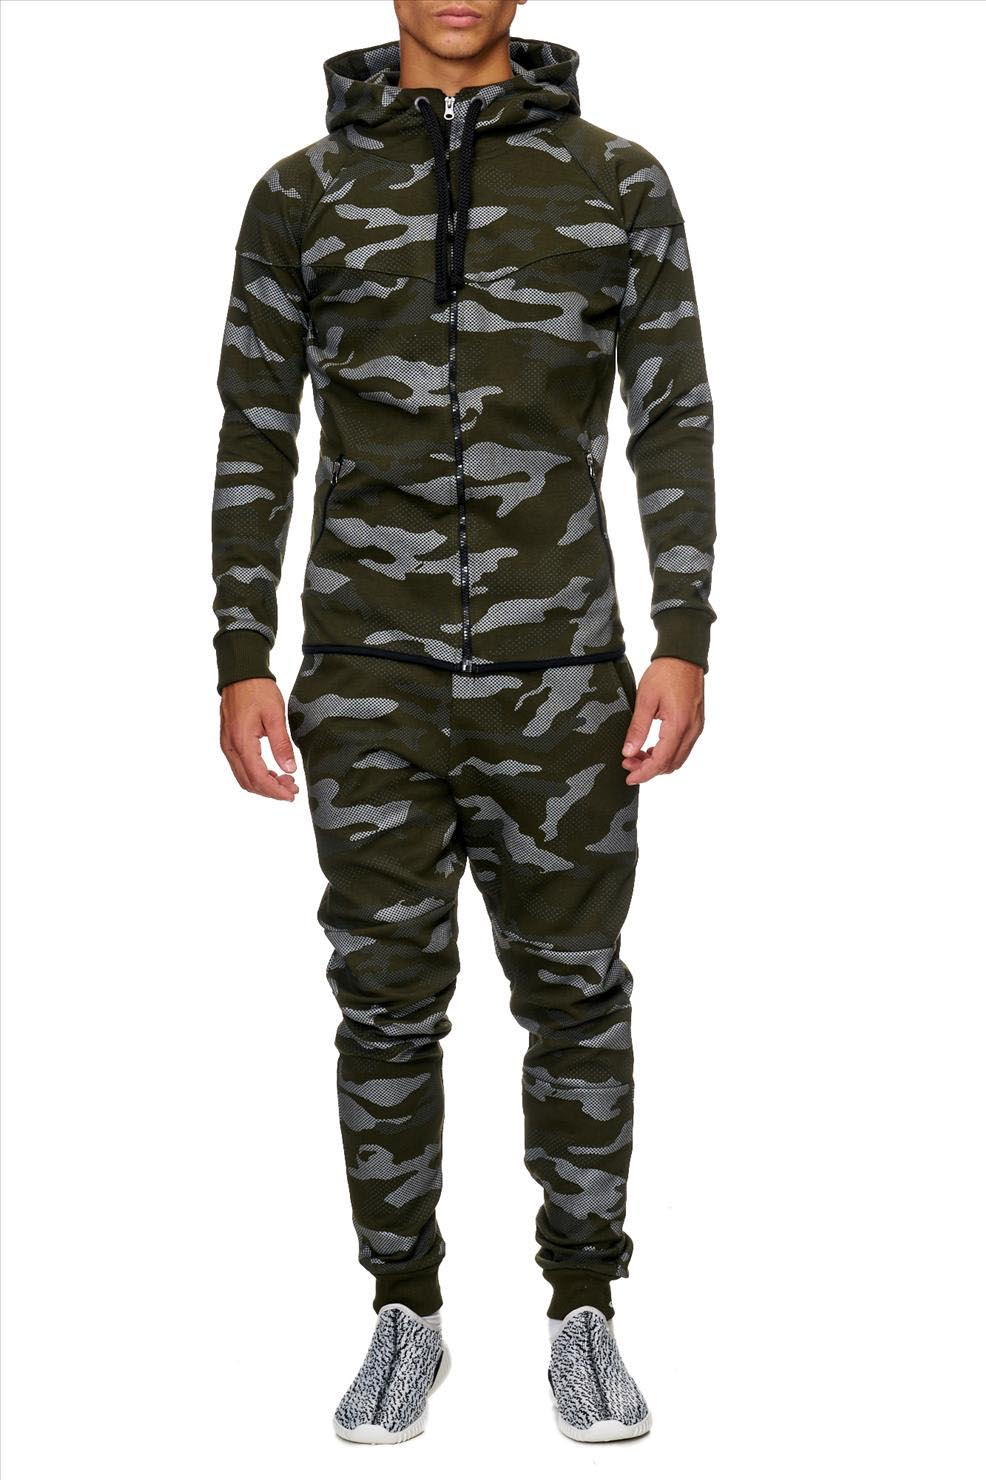 ensemble jogging homme camouflage vert 658. Black Bedroom Furniture Sets. Home Design Ideas